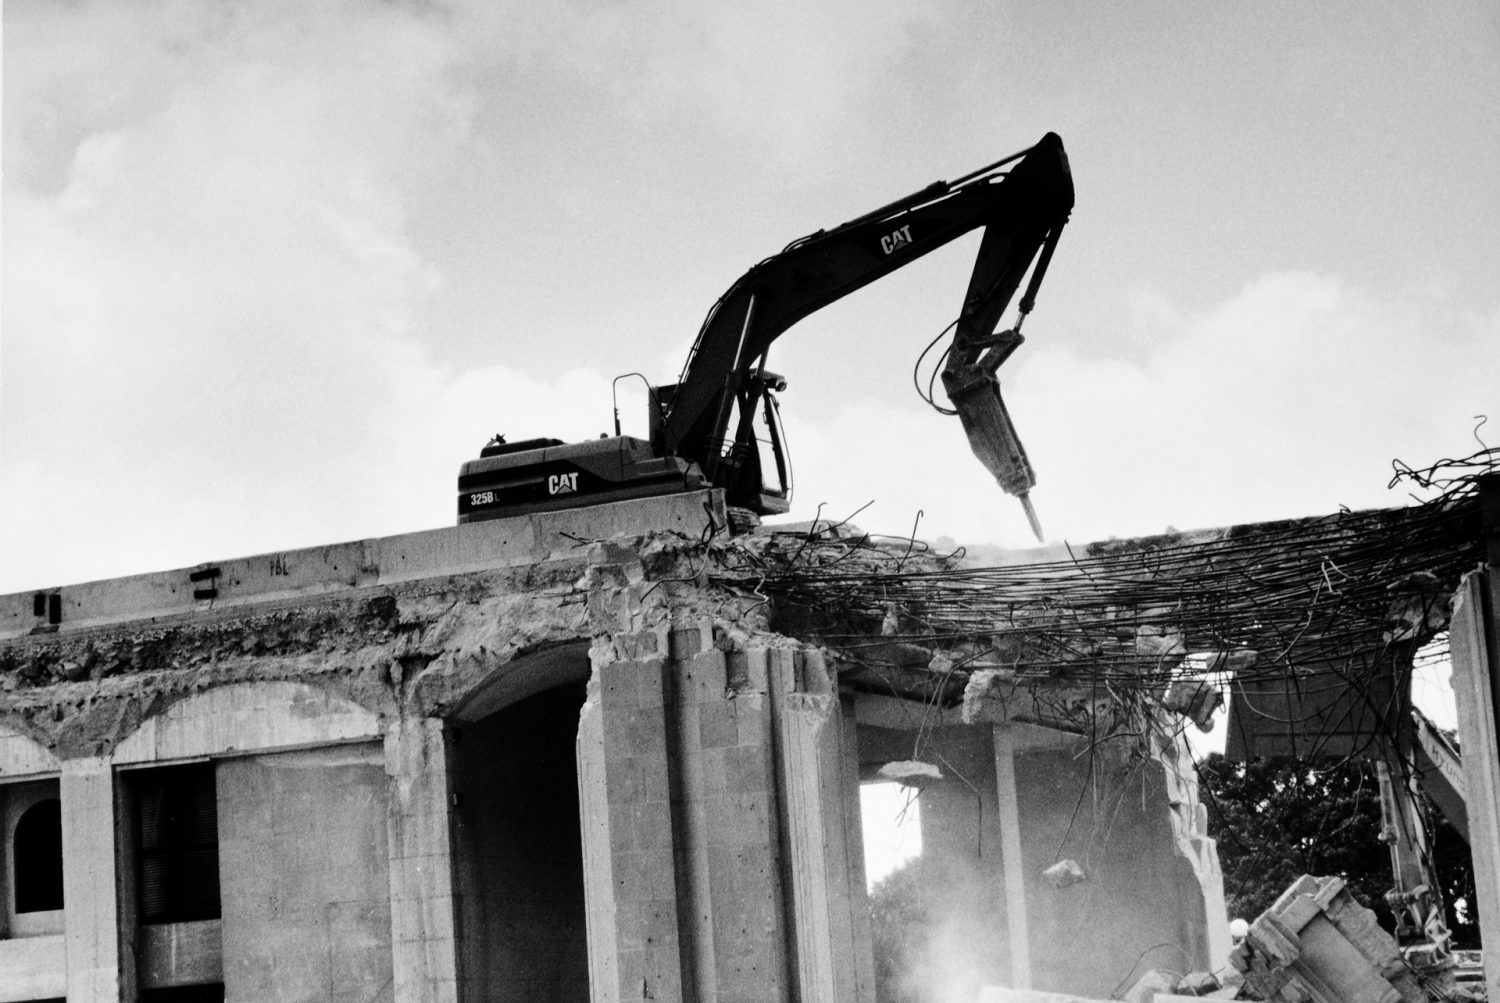 VVF192 - Demolition of City Gate,May 2011 Chlorobromide silver gelatin print.